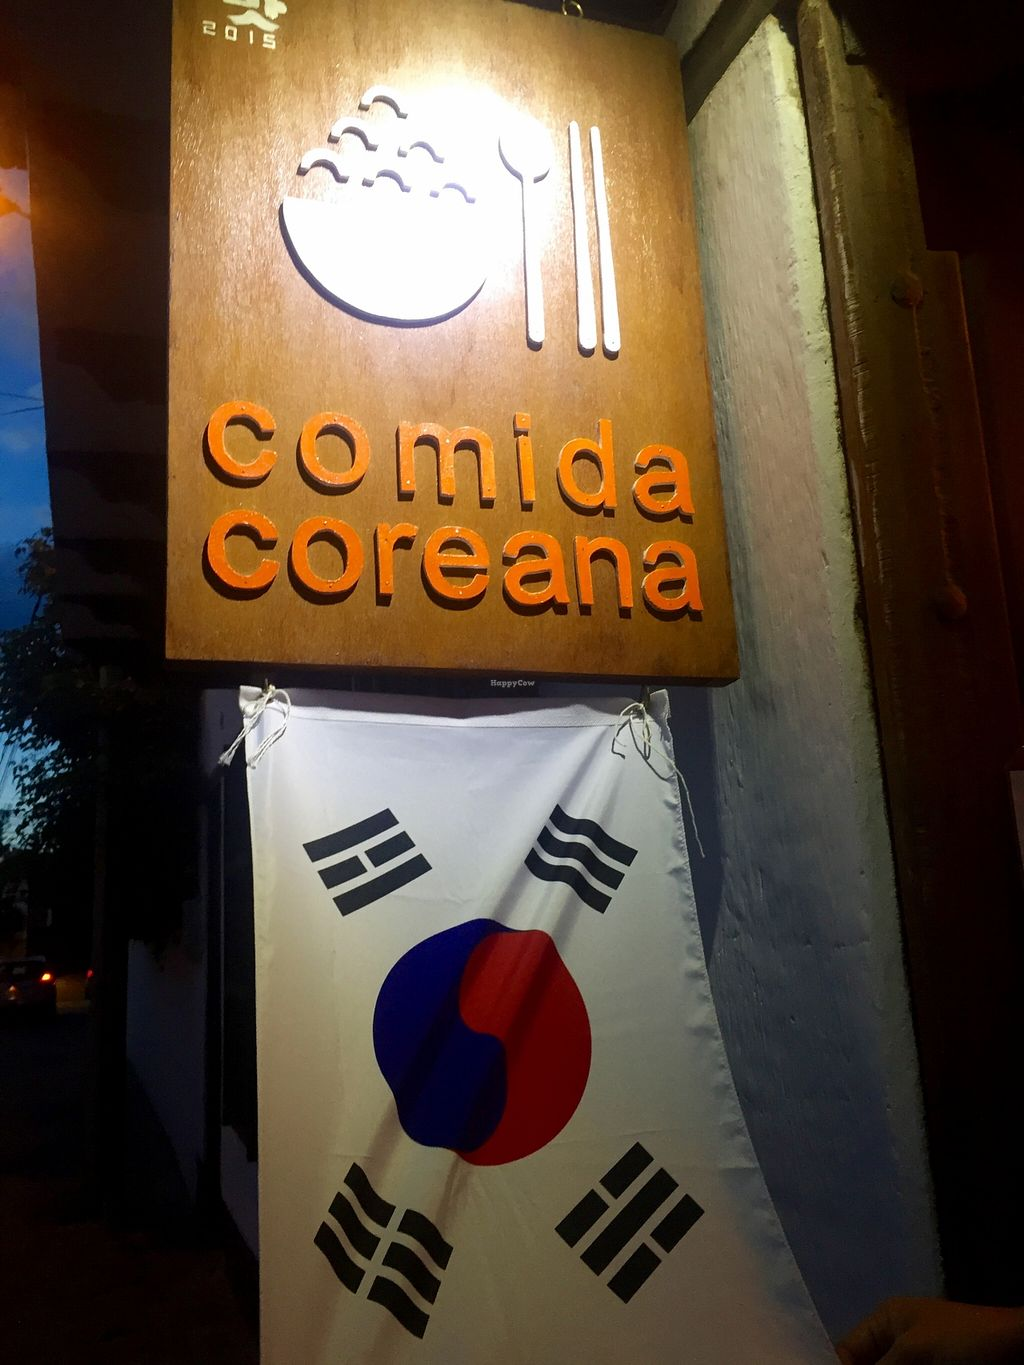 """Photo of Comida Coreana  by <a href=""""/members/profile/GabBatailleur"""">GabBatailleur</a> <br/>entrance <br/> December 21, 2015  - <a href='/contact/abuse/image/67347/129387'>Report</a>"""